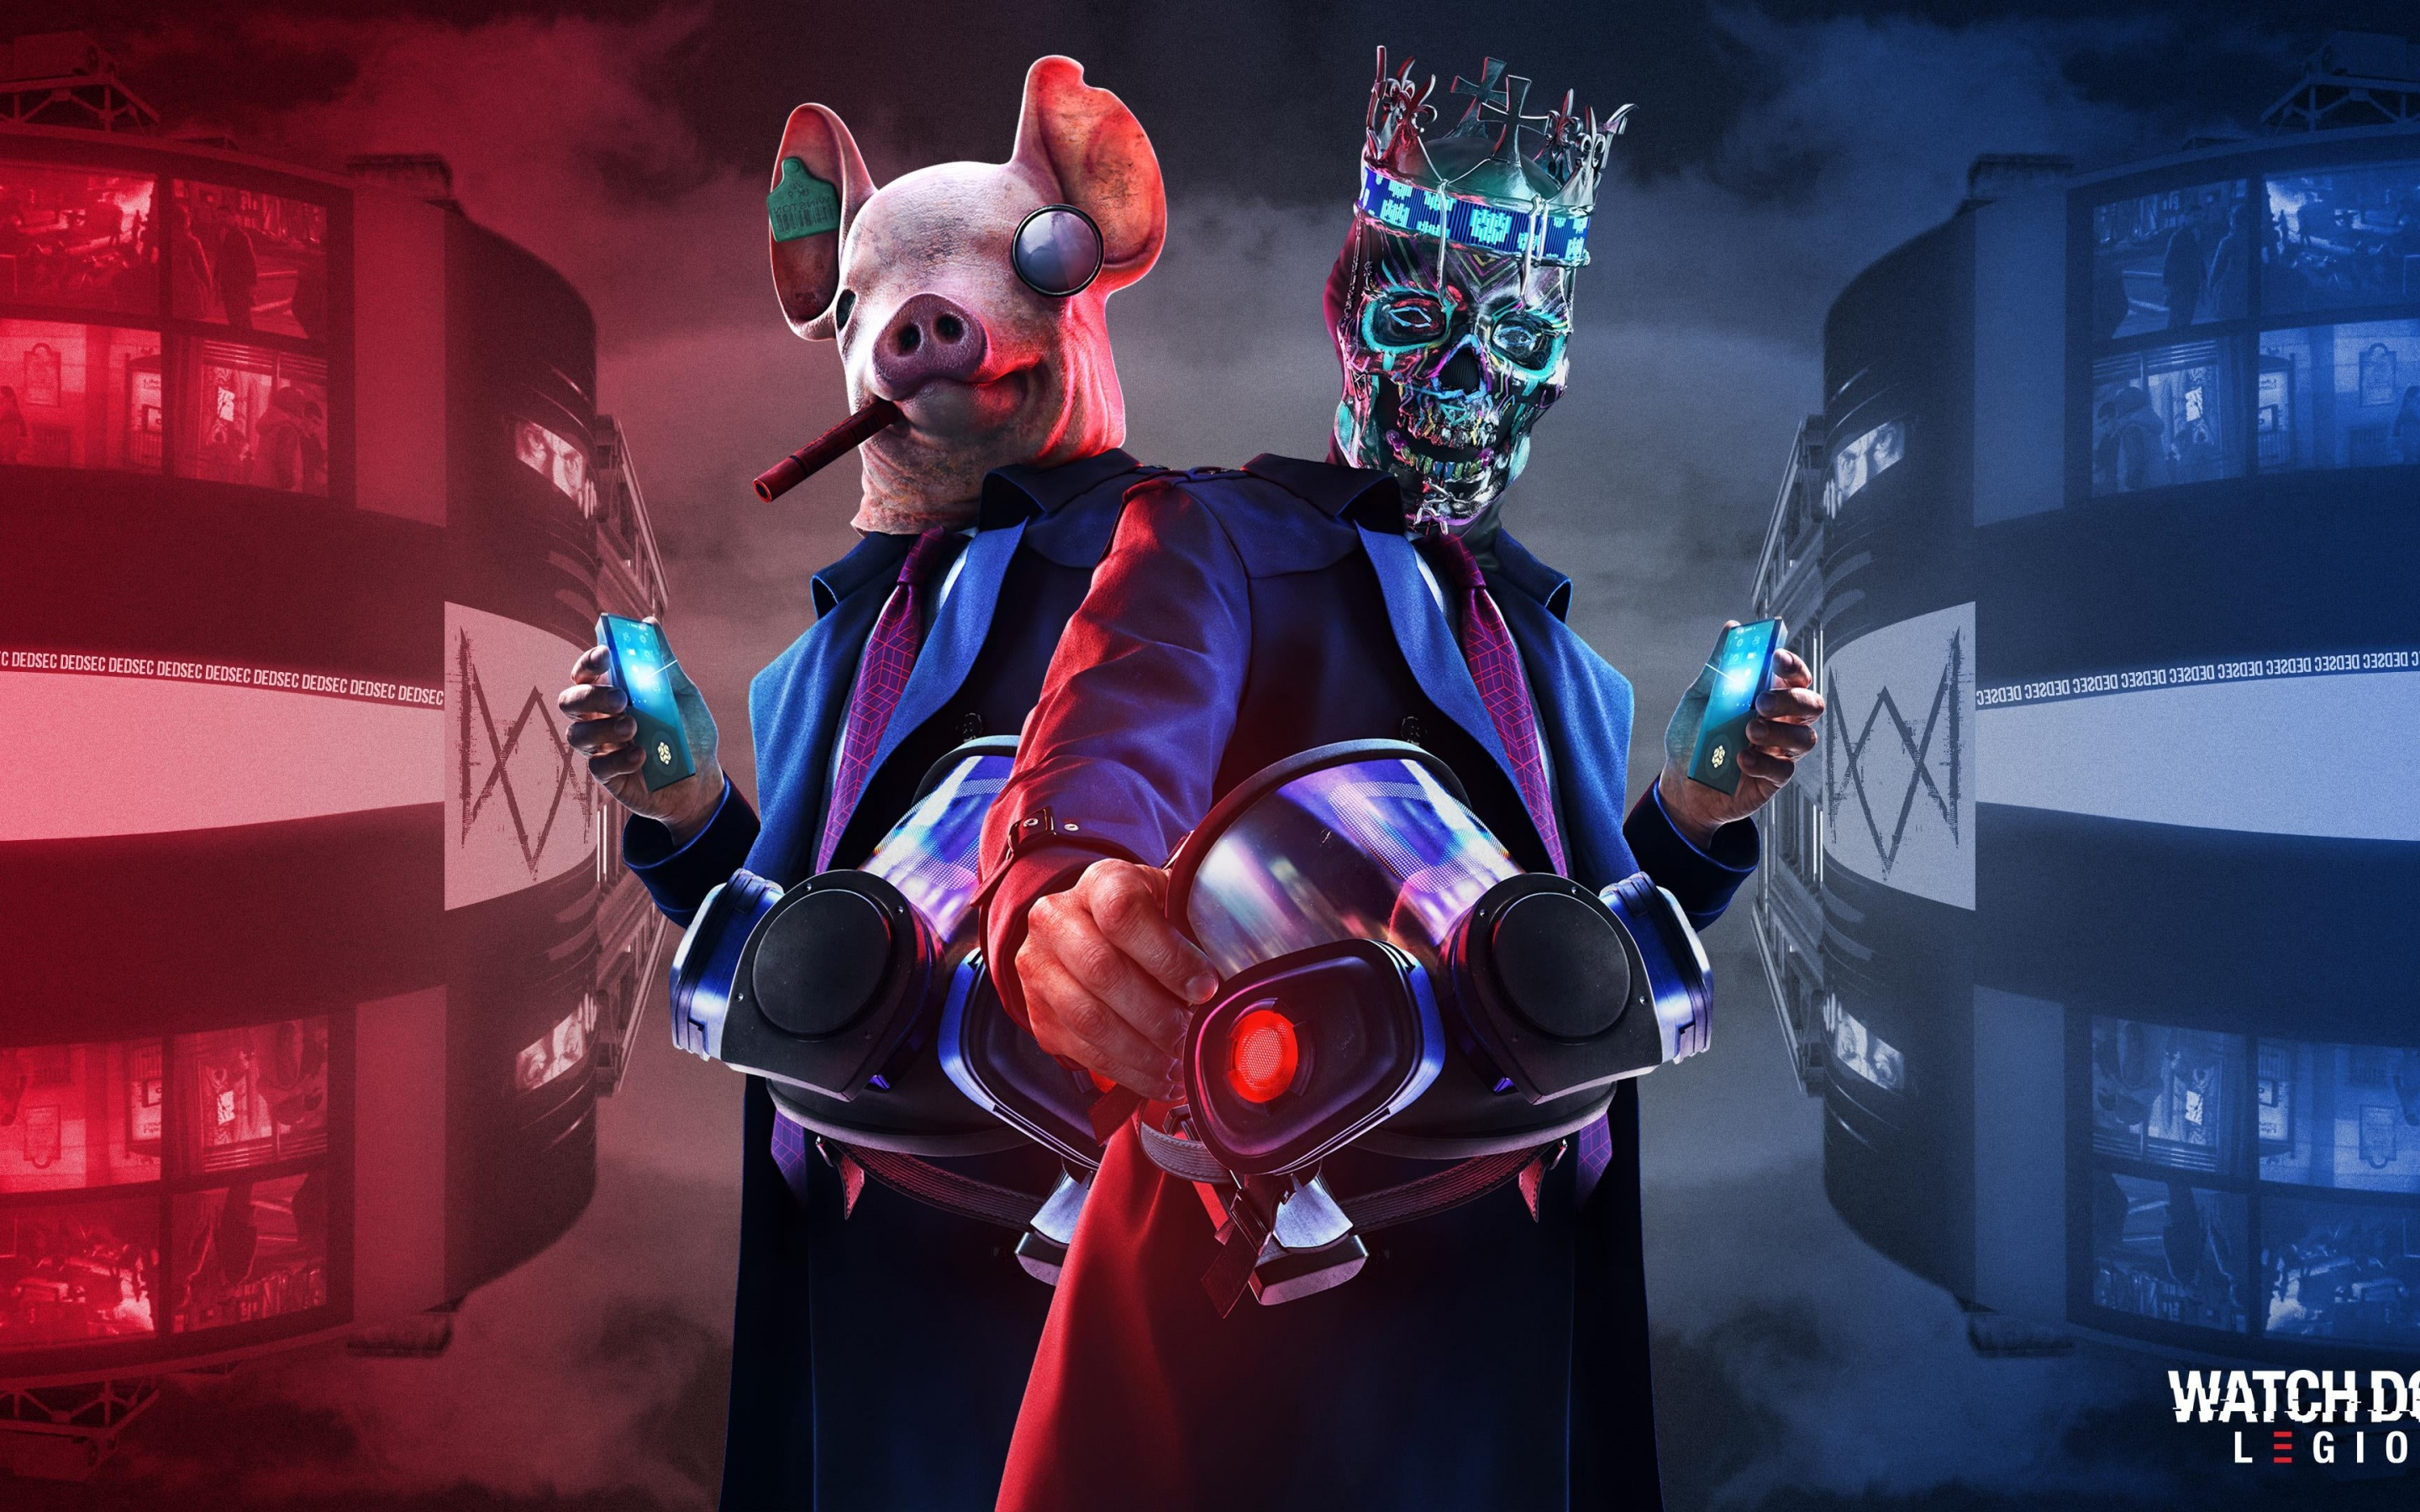 Watch Dogs Legion 4k Wallpaper Ded Coronet Mask Pig Mask Playstation 5 Playstation 4 Xbox Series X Games 673